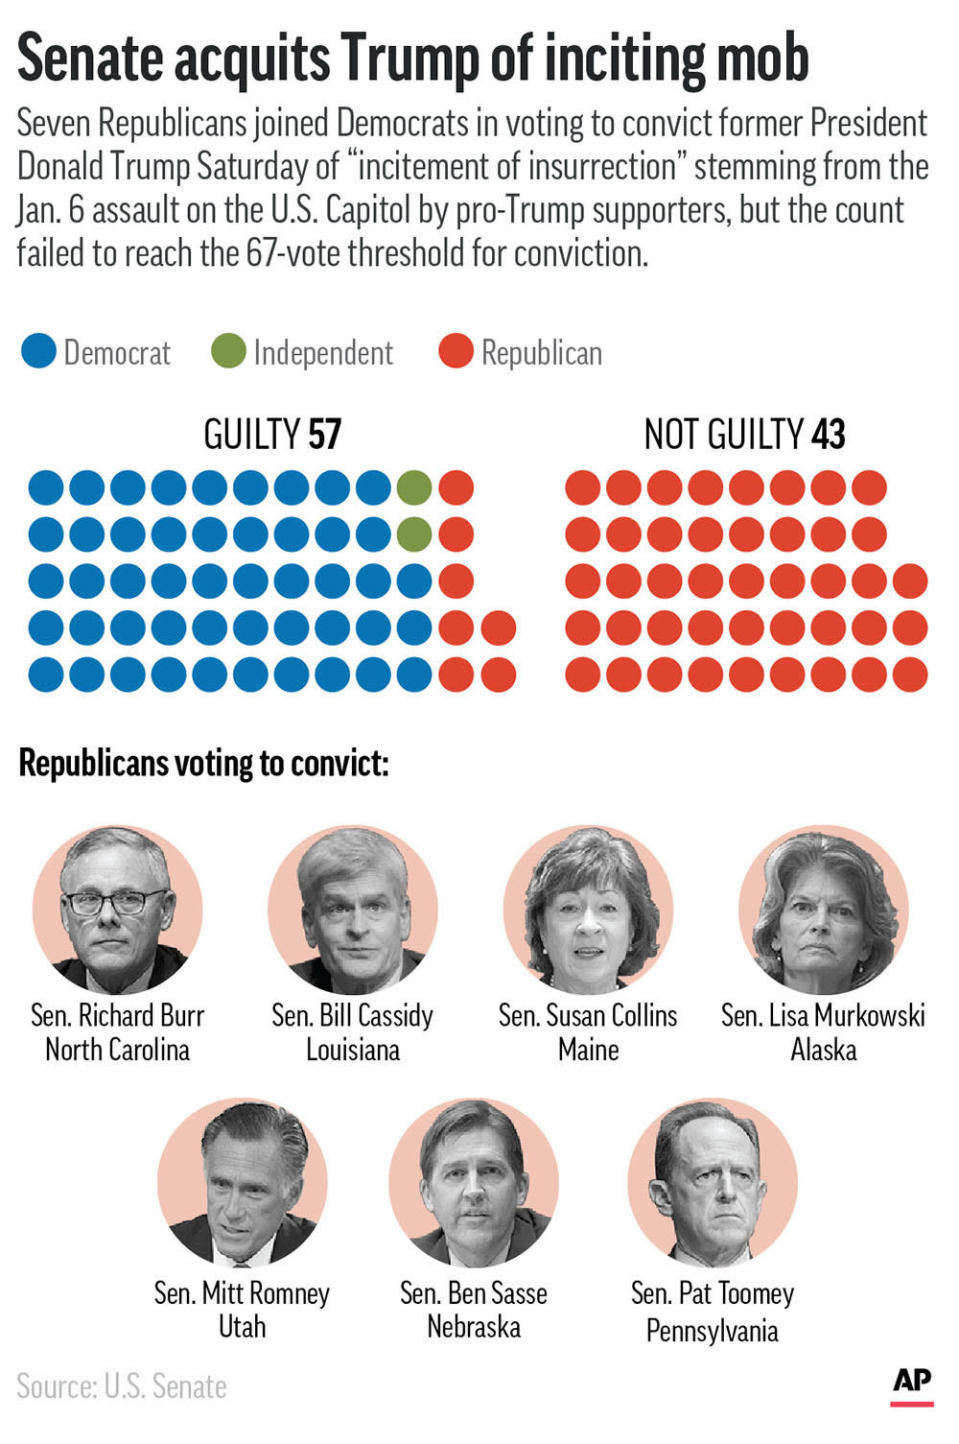 Former President Donald Trump was acquitted Saturday in his Senate impeachment trial for inciting a mob to assault the U.S. Capitol in January. Seven Republicans voted with Democrats to convict him. (AP Graphic)